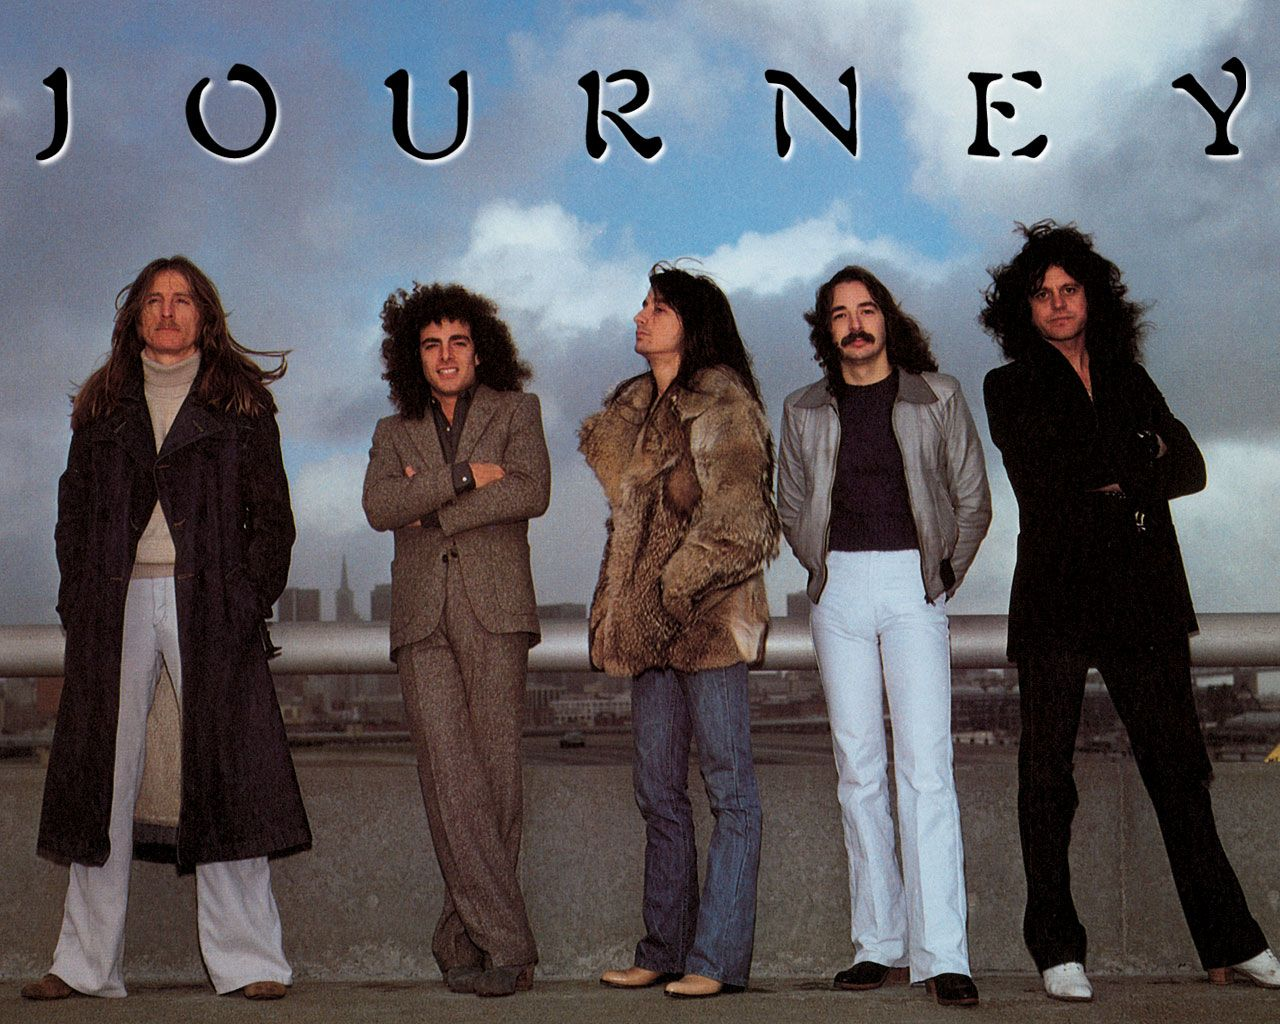 Journey Their Voices And Music Since I Was 11 Or 12 They Ve Been Constantly With Me I Have To Thank Them For With Images Steve Perry Journey Steve Perry Music Bands